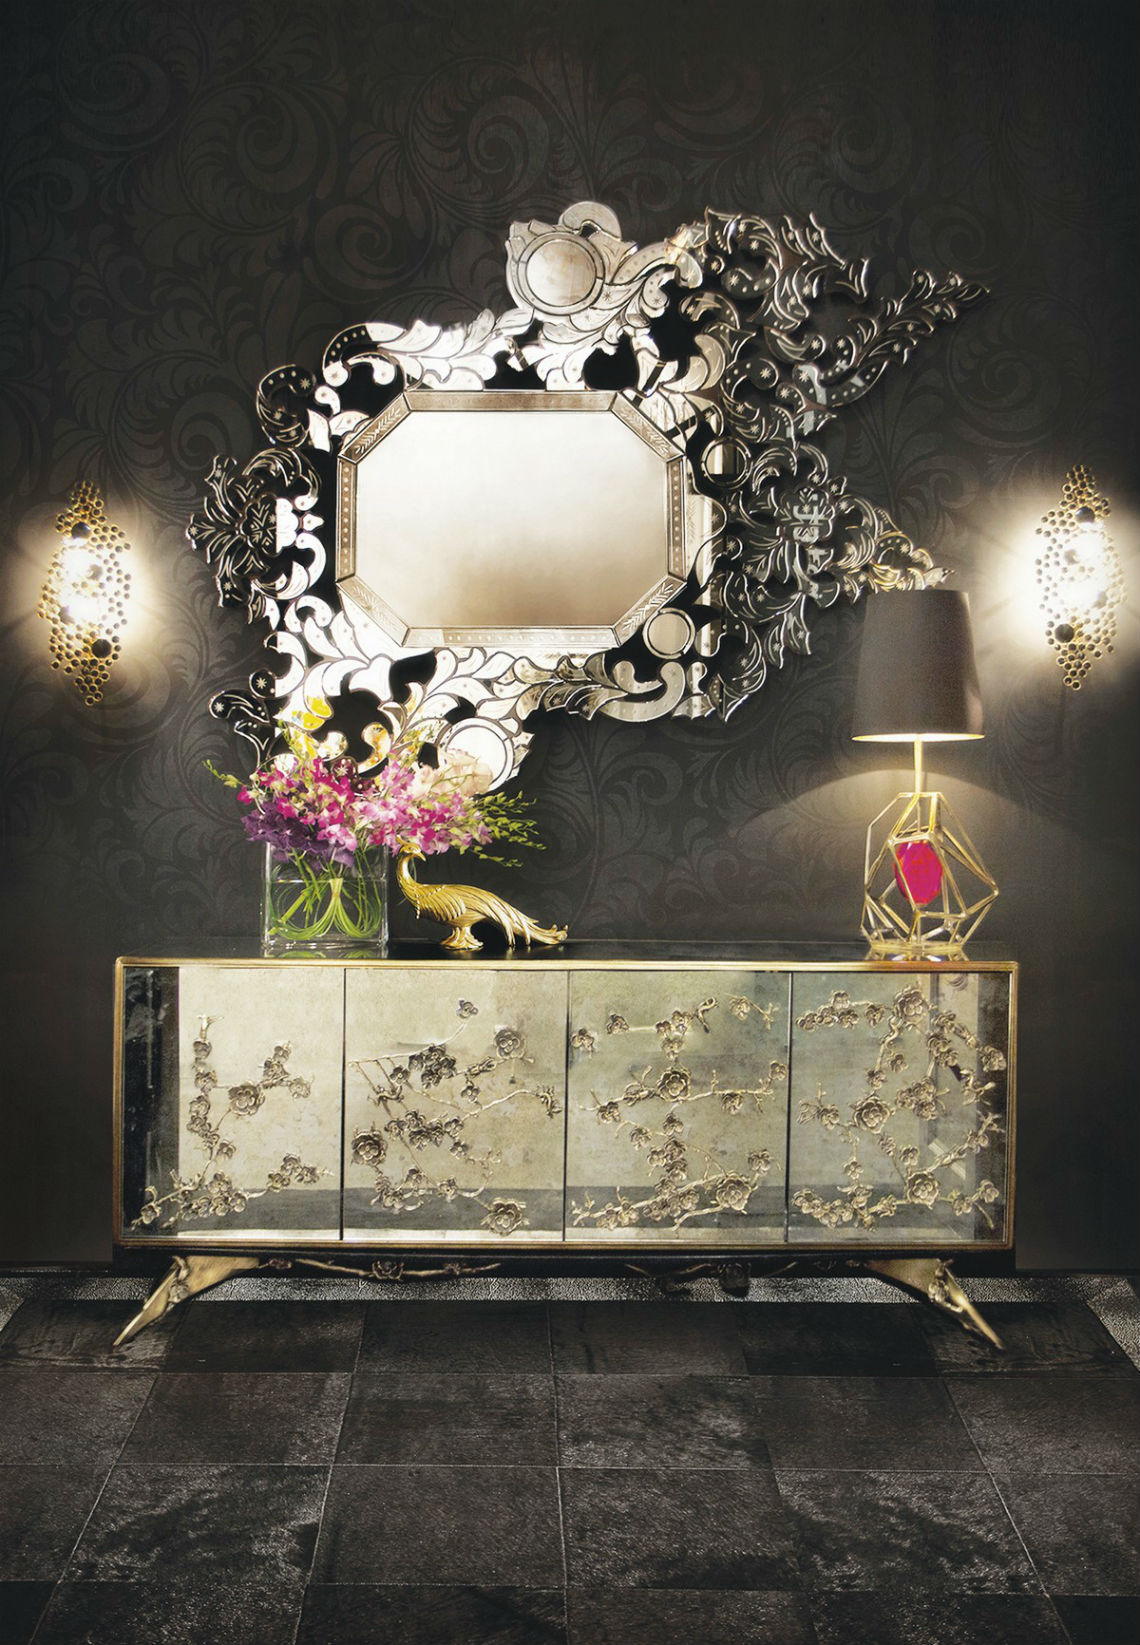 Modern Mirrors To Match Your Living Room Sideboard modern mirrors Modern Mirrors To Match Your Living Room Sideboard 4 5